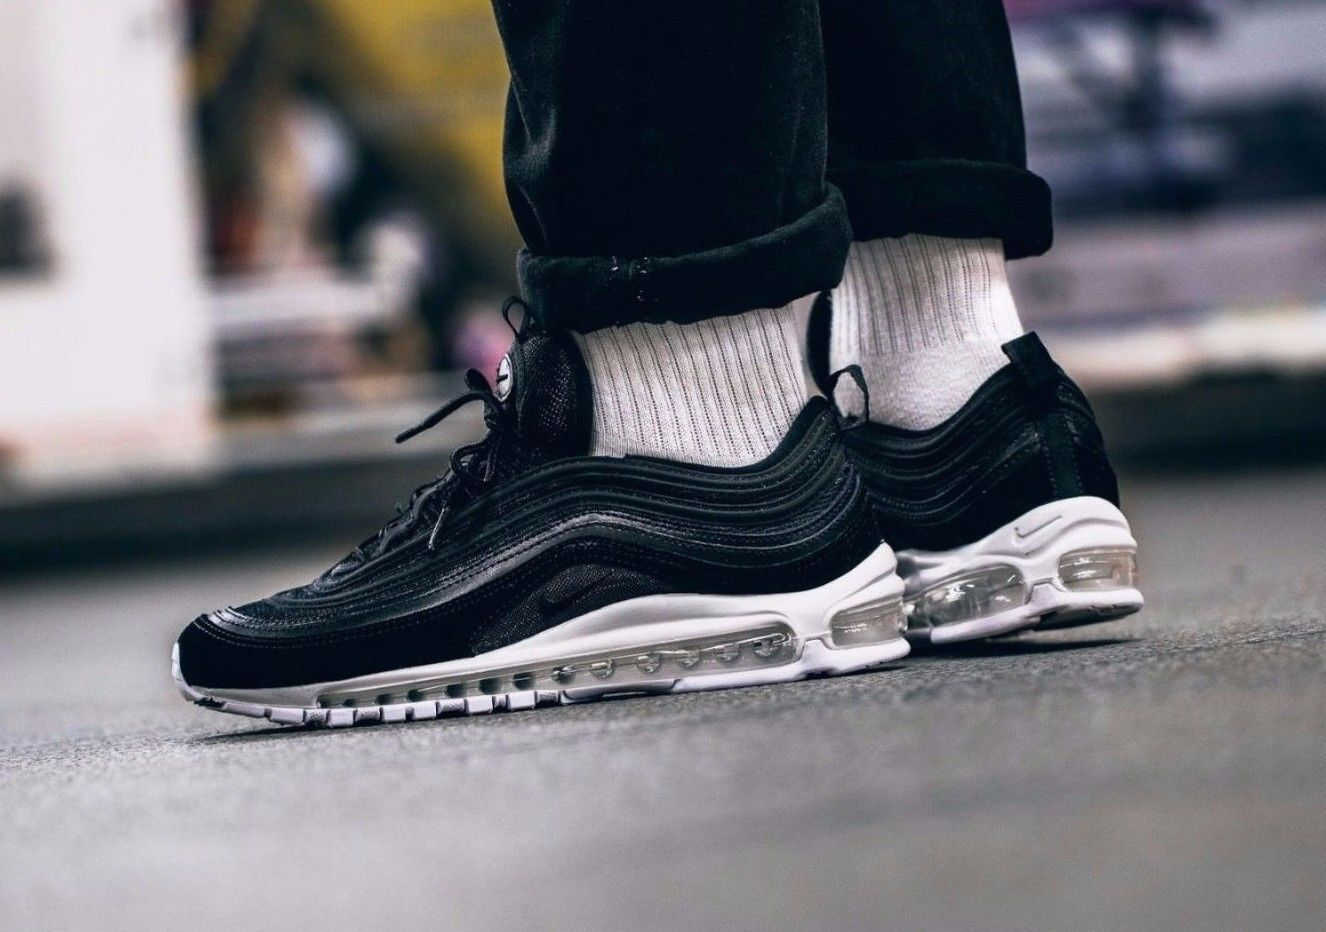 NIKE AIR MAX 97 PRM Black/White- UNISEX TRAINERS ALL SIZES- Limited Pairs